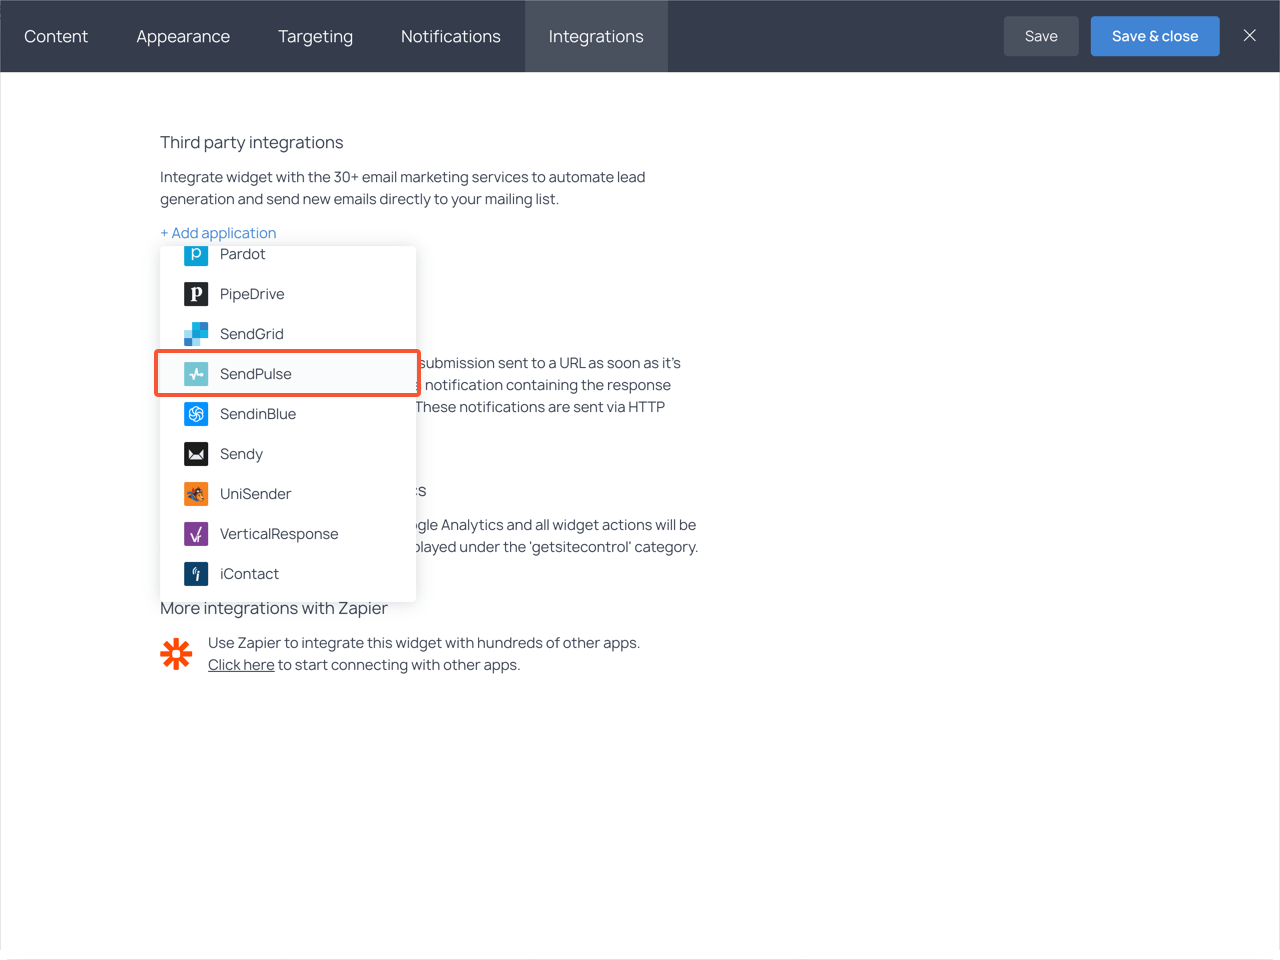 Integrations section with the highlighted SendPulse item in the dropdown list